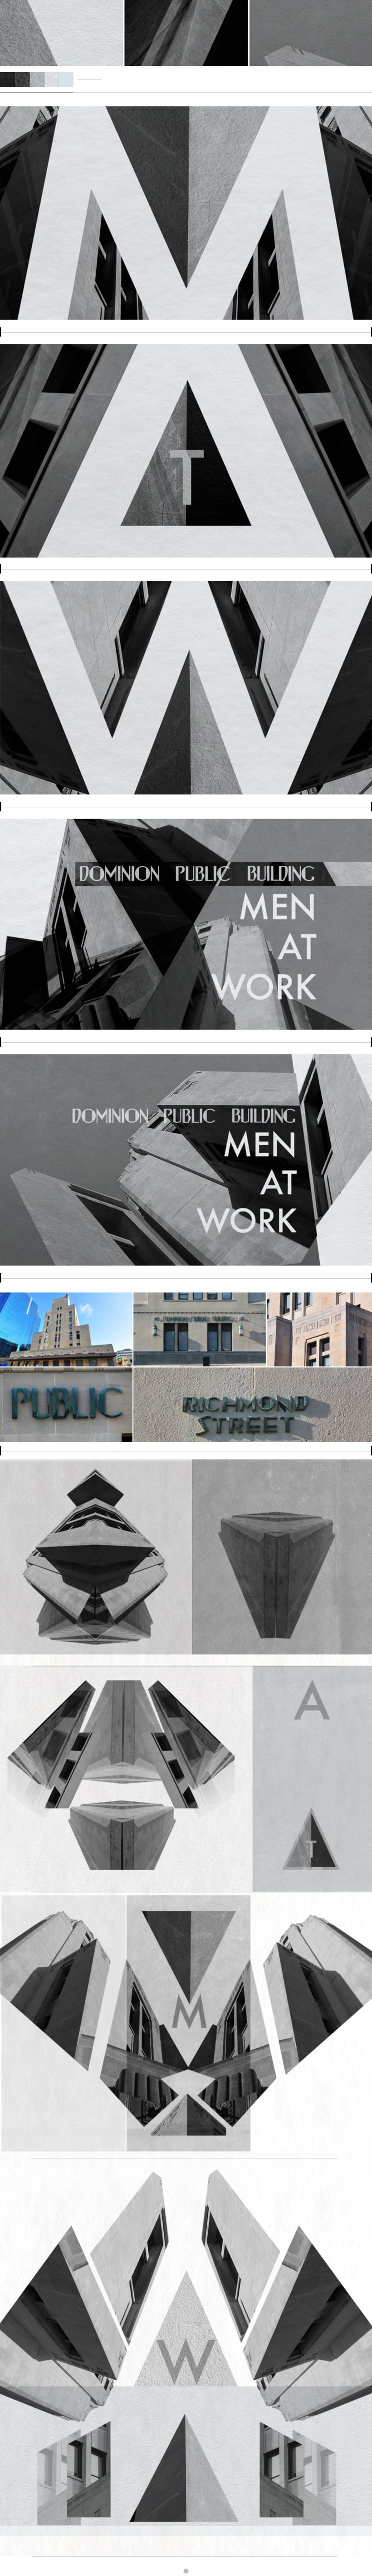 MEN AT WORK / DOMINION PUBLIC BUILDING 0